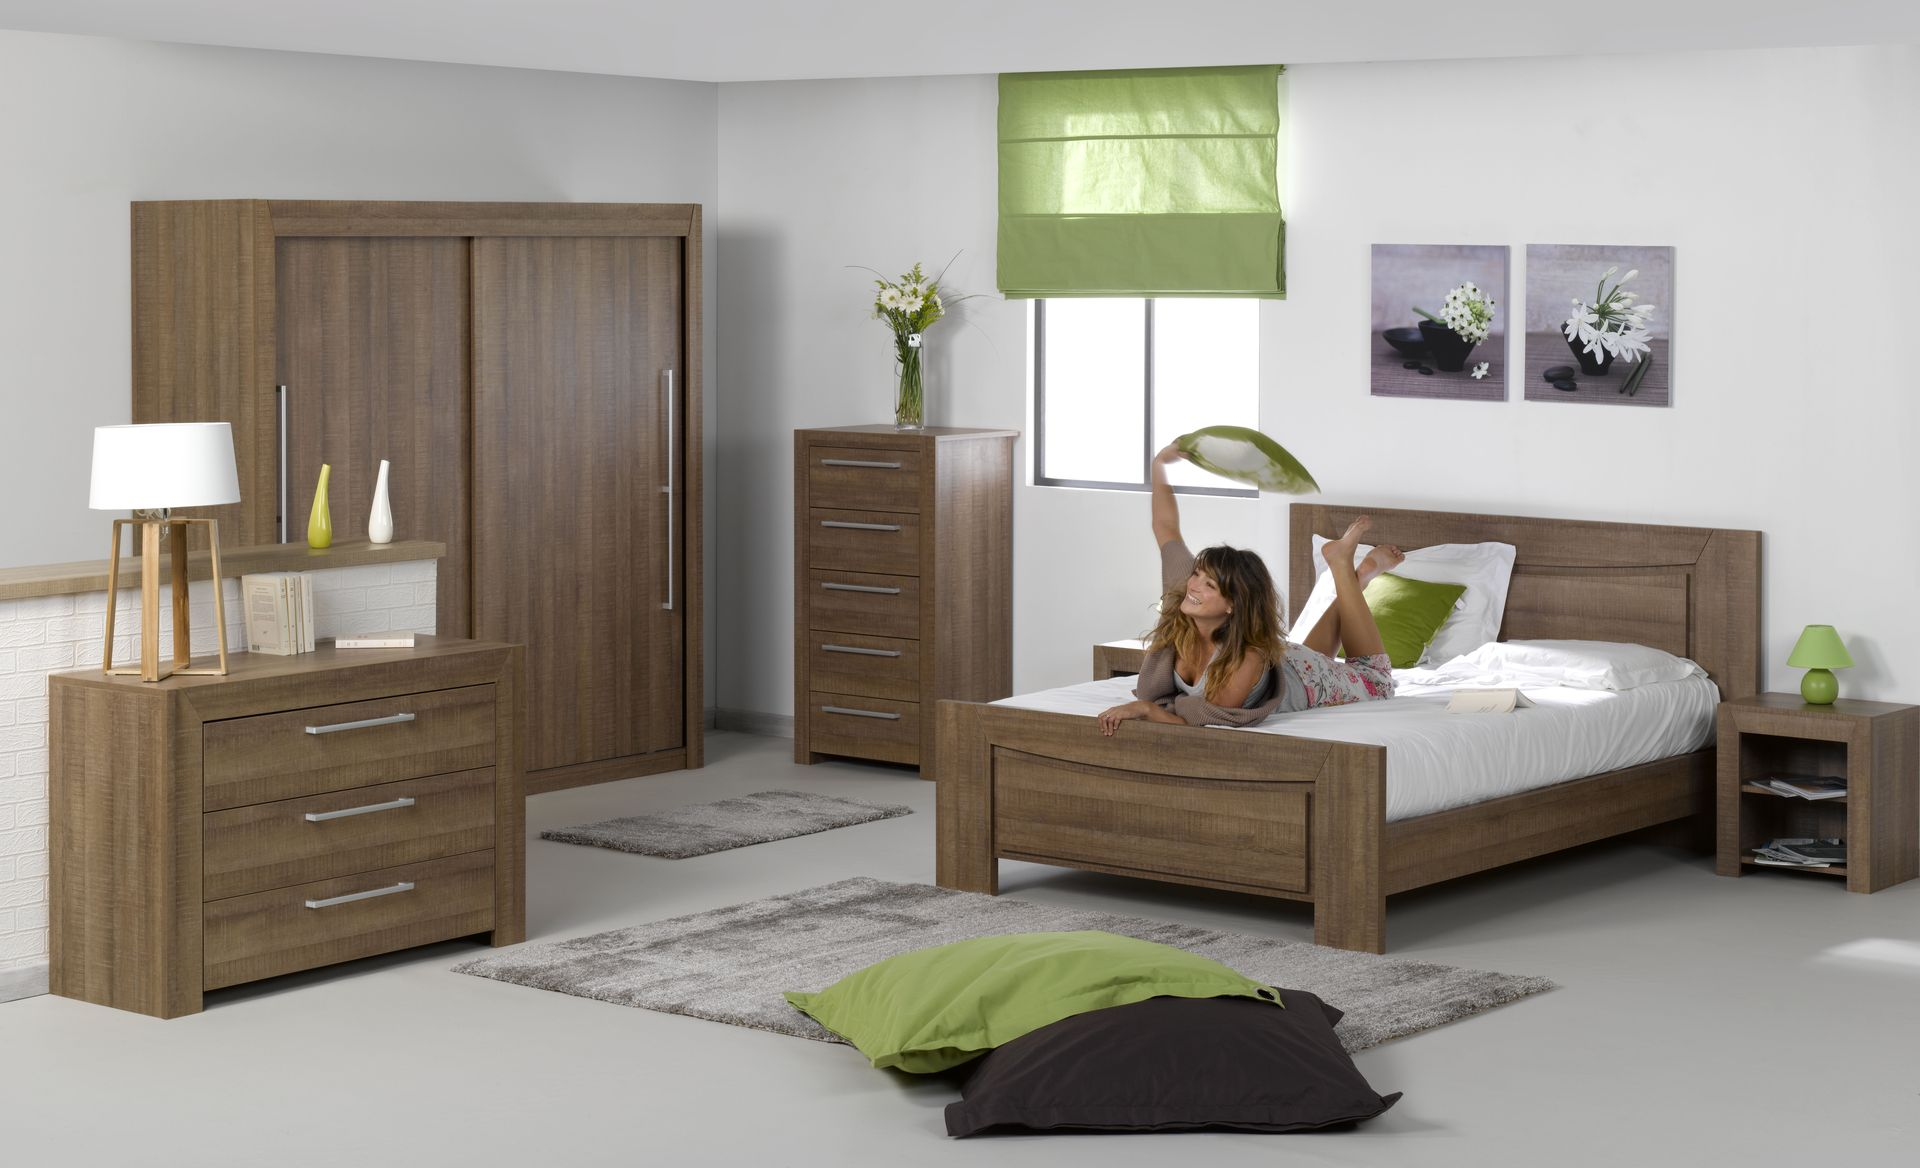 comment personnaliser sa chambre coucher le mag de l 39 habitat. Black Bedroom Furniture Sets. Home Design Ideas